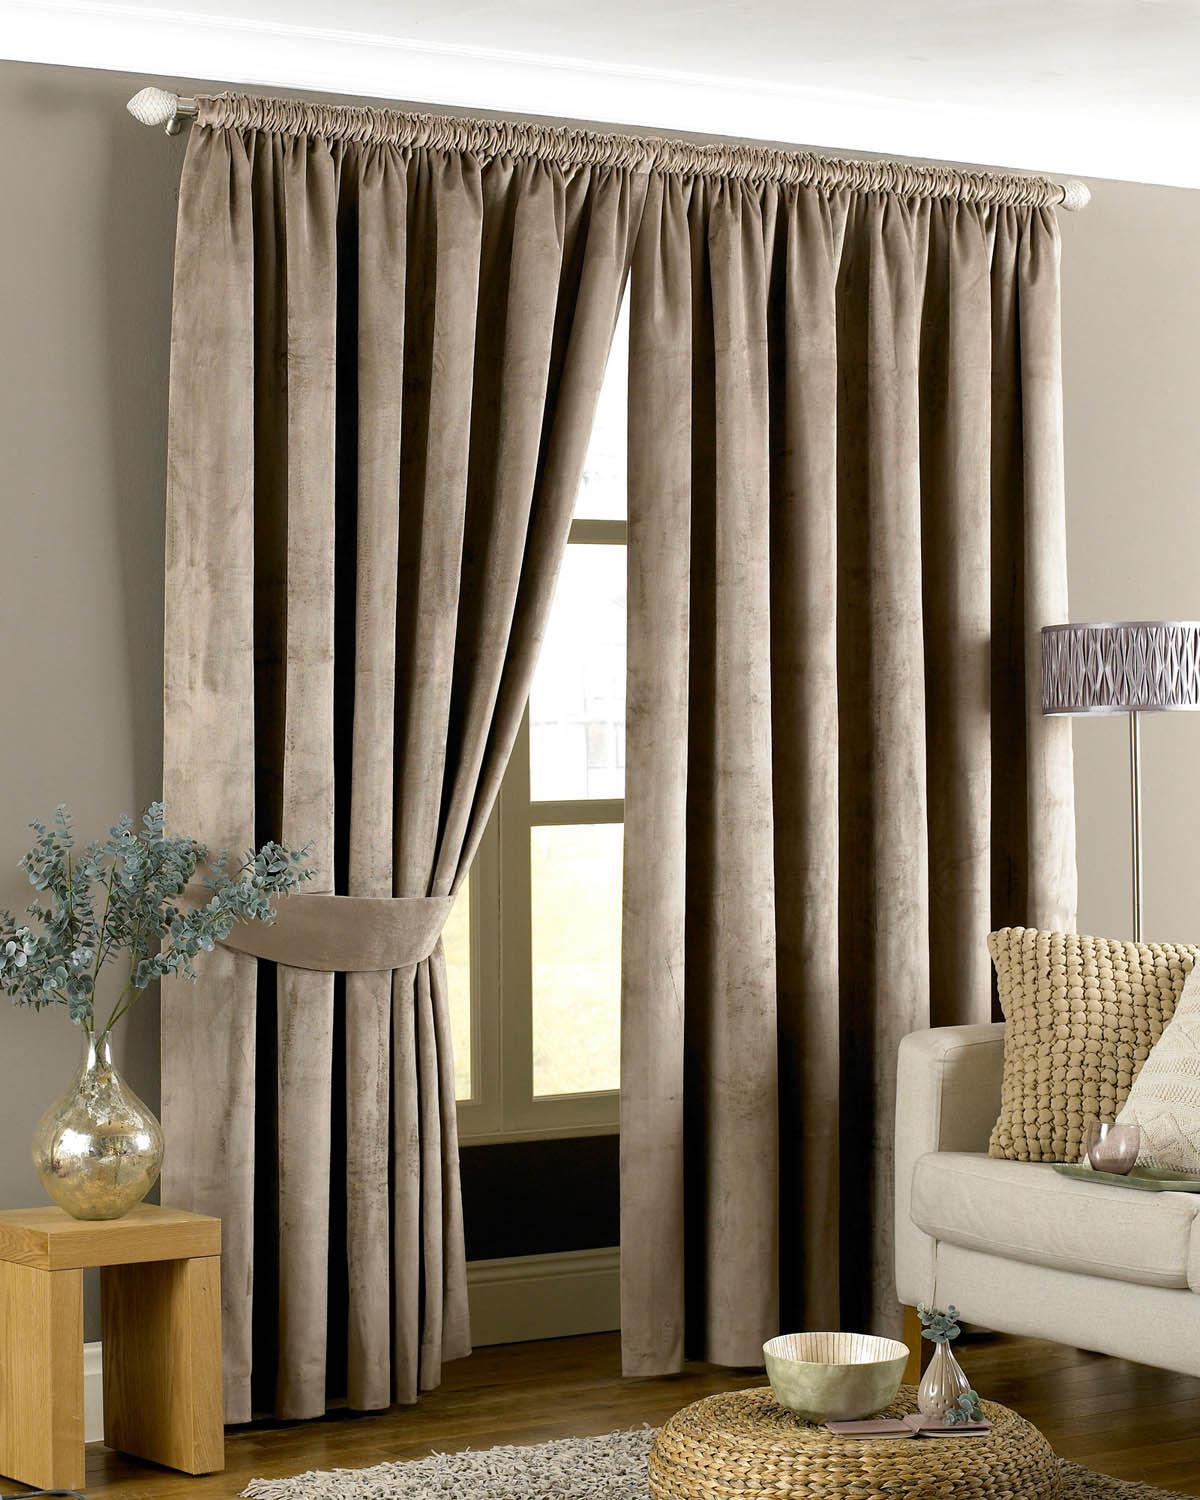 Curtains abstract made to measure felicia duckegg curtains - Emperor Ready Made Lined Curtains Taupe Uk Delivery